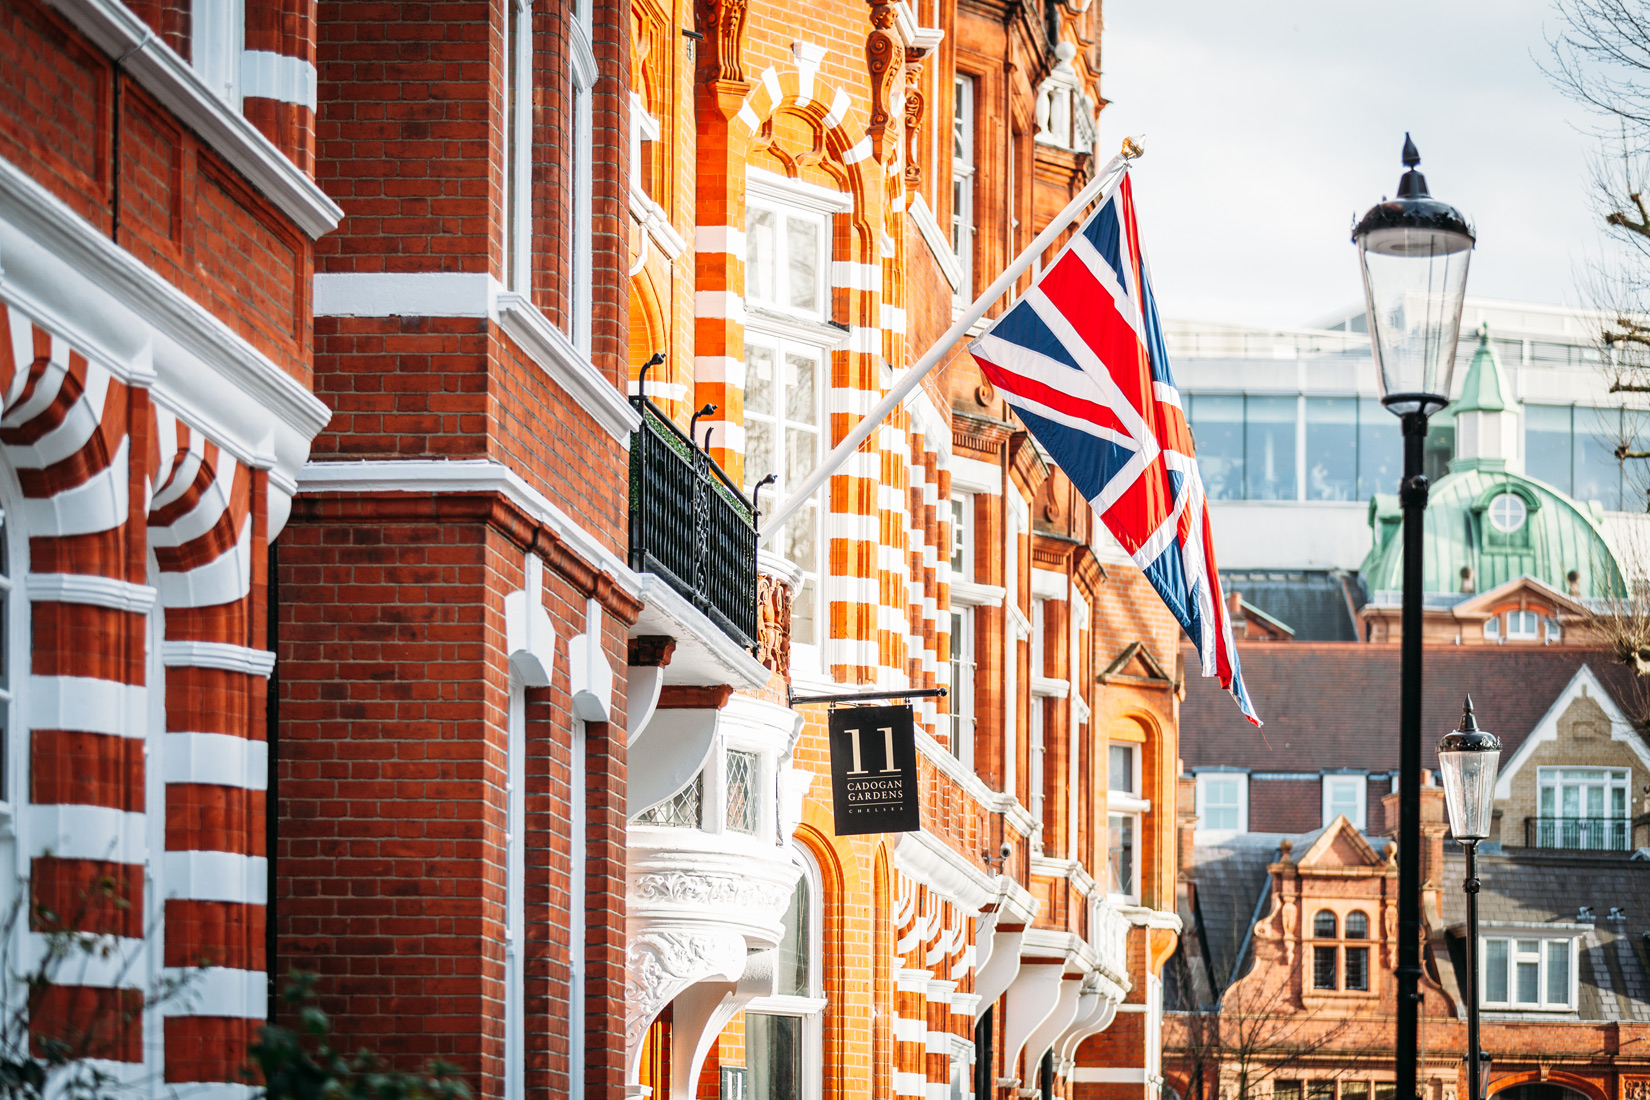 Modern day majesty at 11 cadogan gardens in london for Modern hotels in london